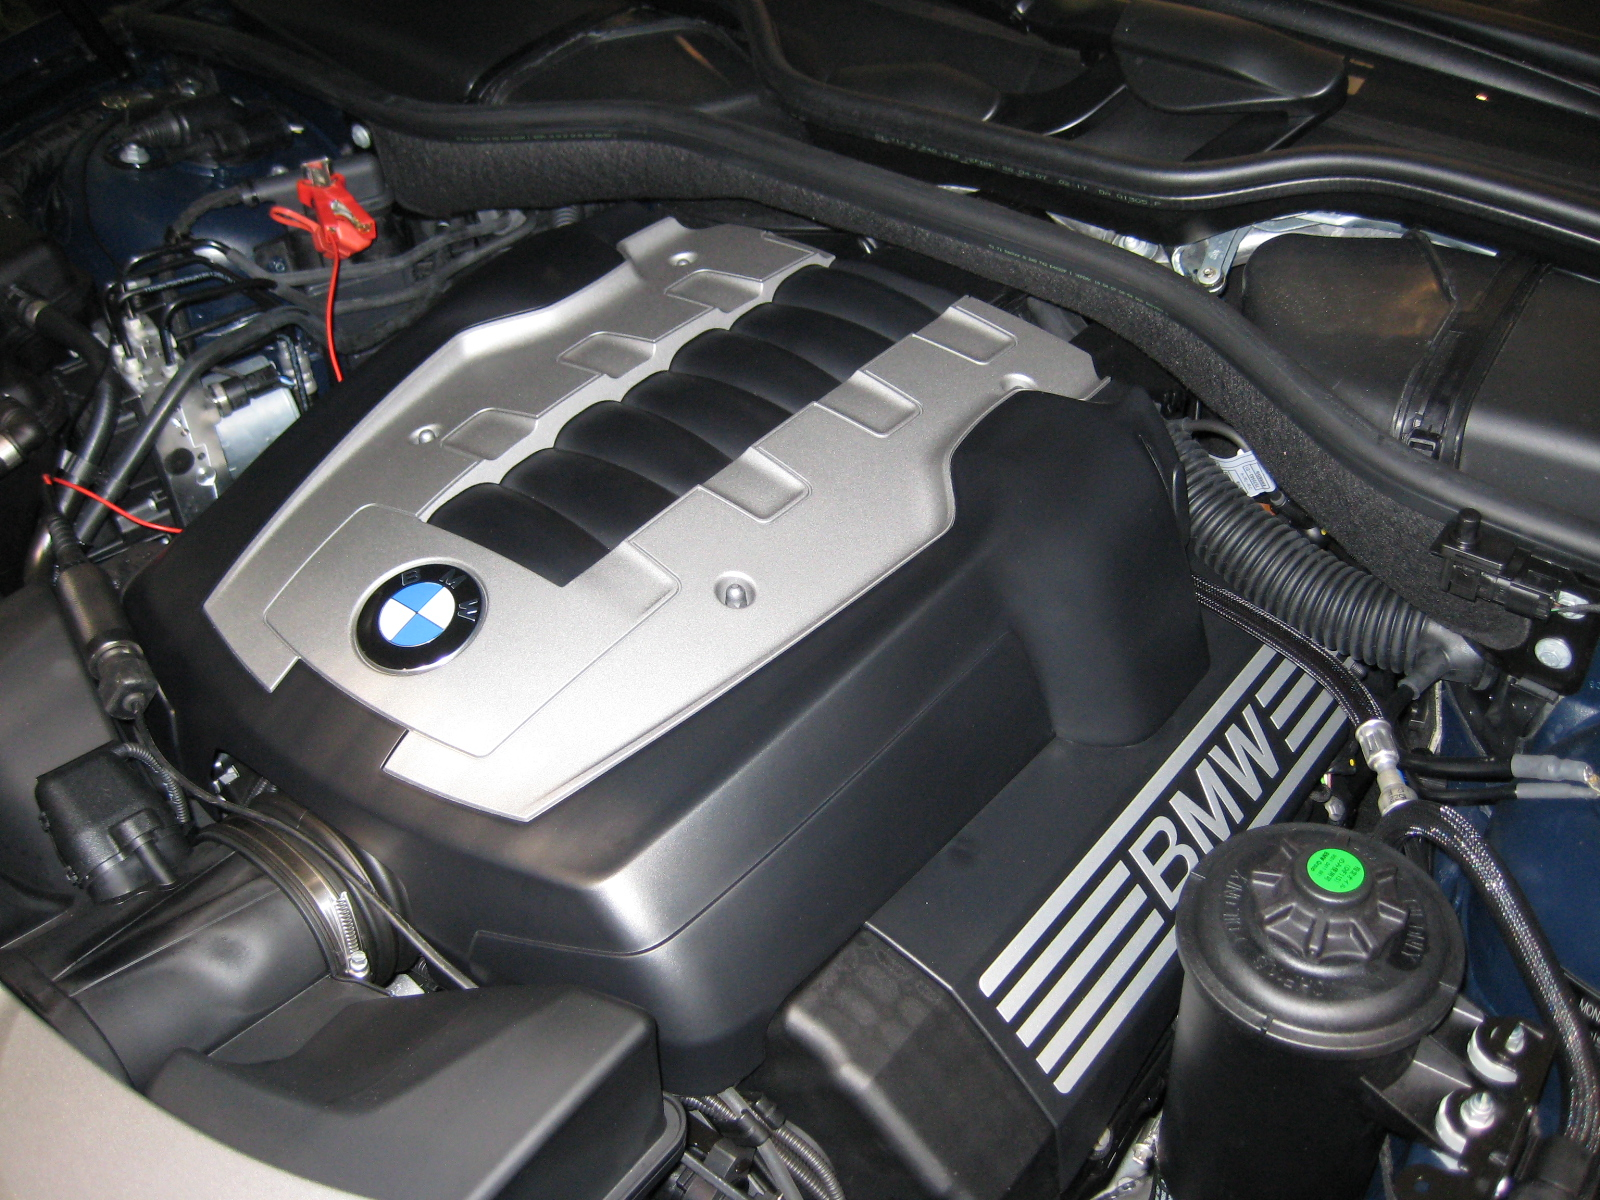 hight resolution of bmw n62 wikipedia bmw engines 740i diagram